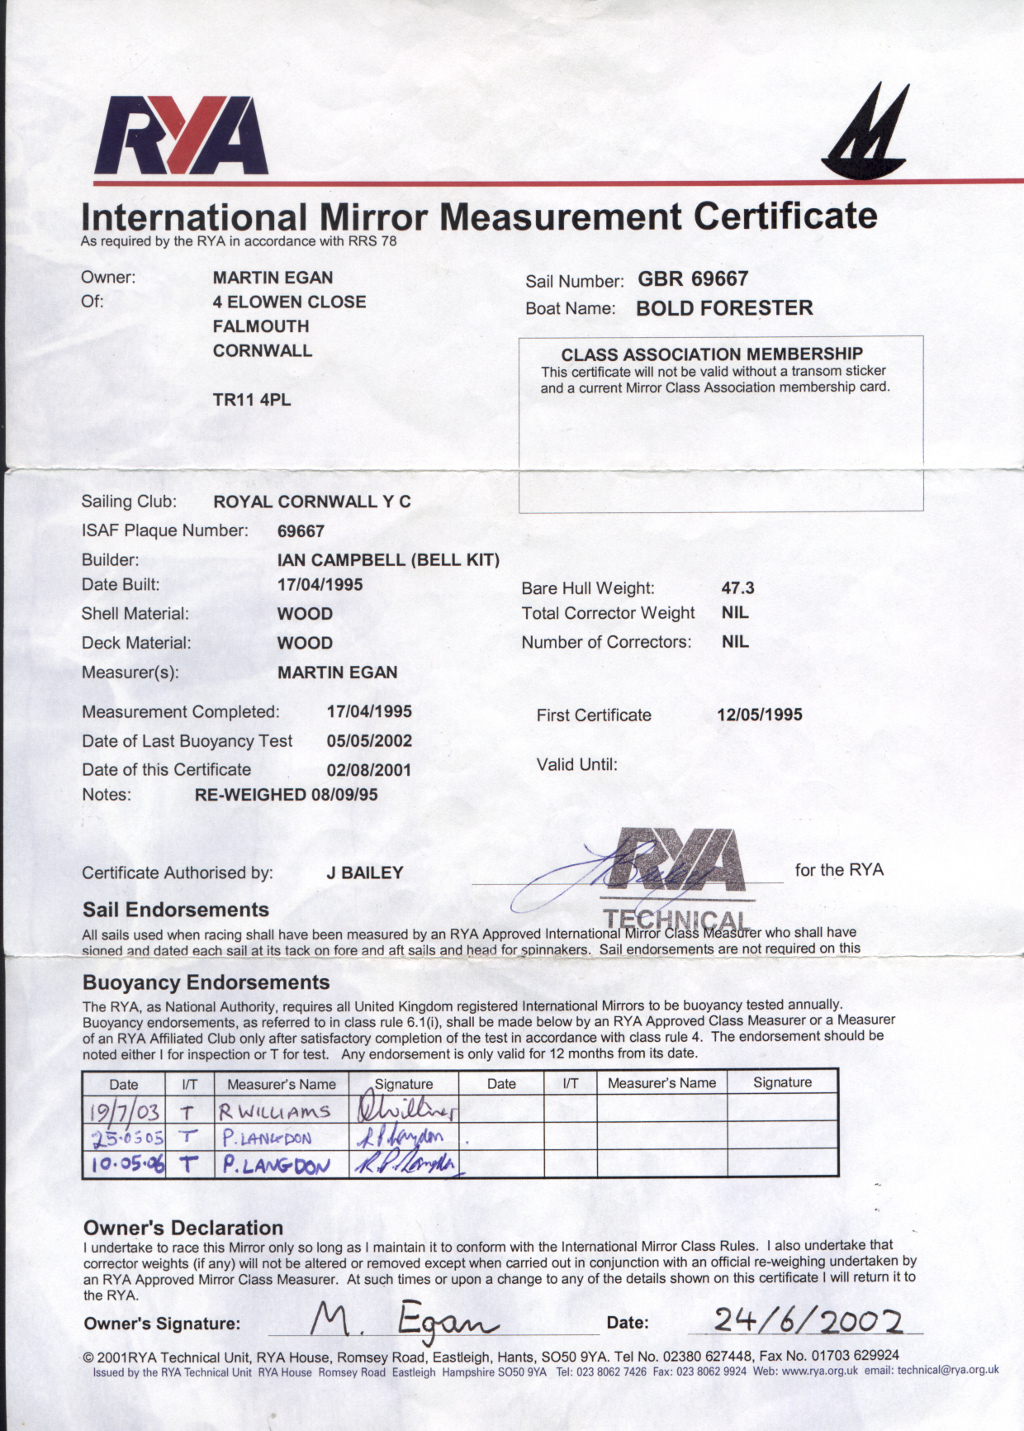 Measurement Certificate for a Mirror Dinghy giving details such as the owner, when it was measured, by who,...